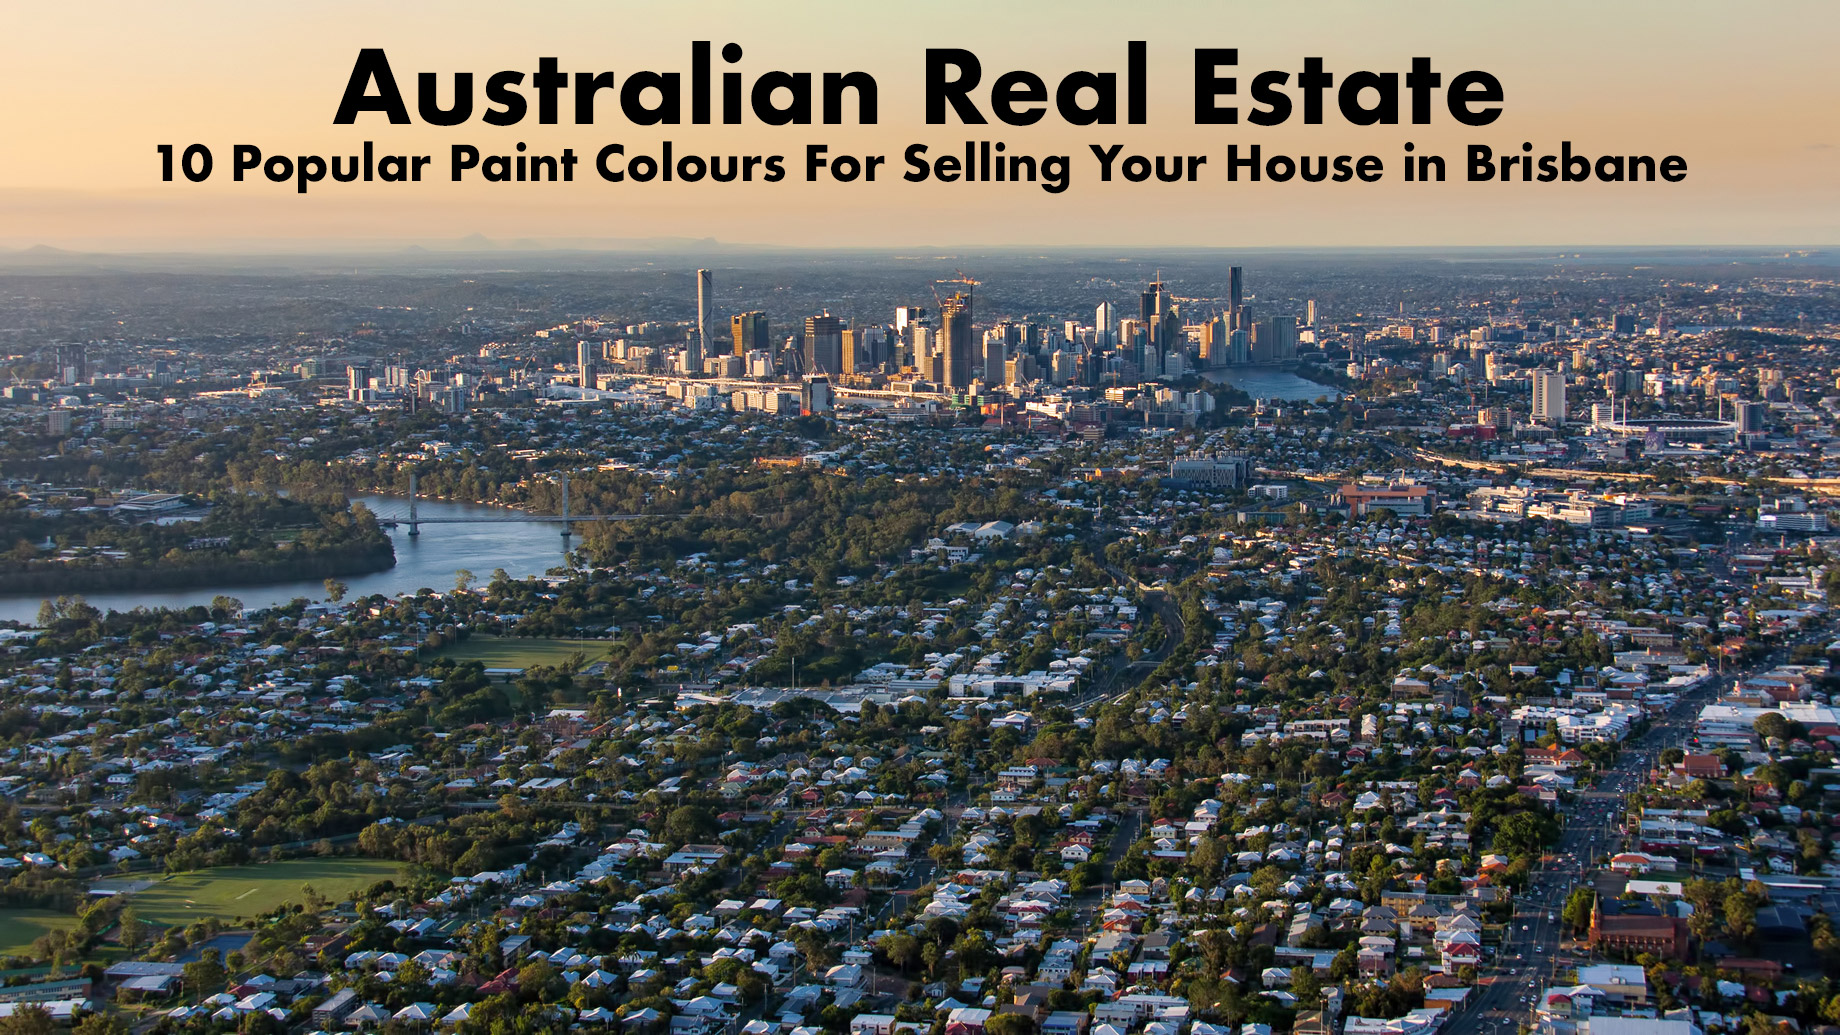 Australian Real Estate - 10 Popular Paint Colours For Selling Your House in Brisbane